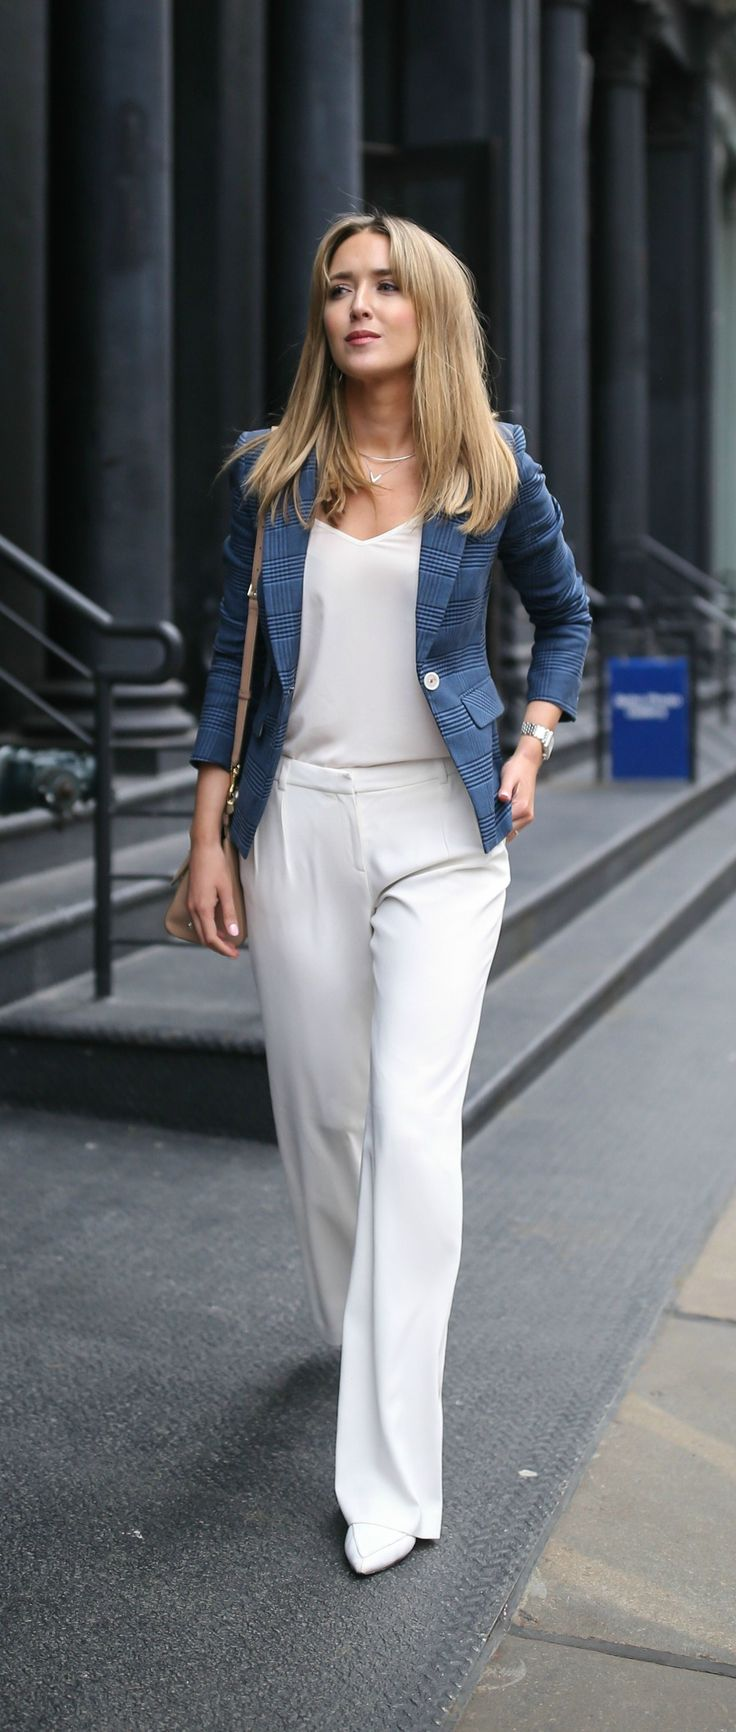 Generous white high-waisted trousers. White camisole. White is the supporting character. The star is the gorgeous marine blue glen plaid blazer. Single button closure. Five buttons at sleeve openings, Elbow patches. Multi-metal watch. One sharp preppy. Style Planet | veronica beard, nicholas kirkwood, dolce and gabbana,